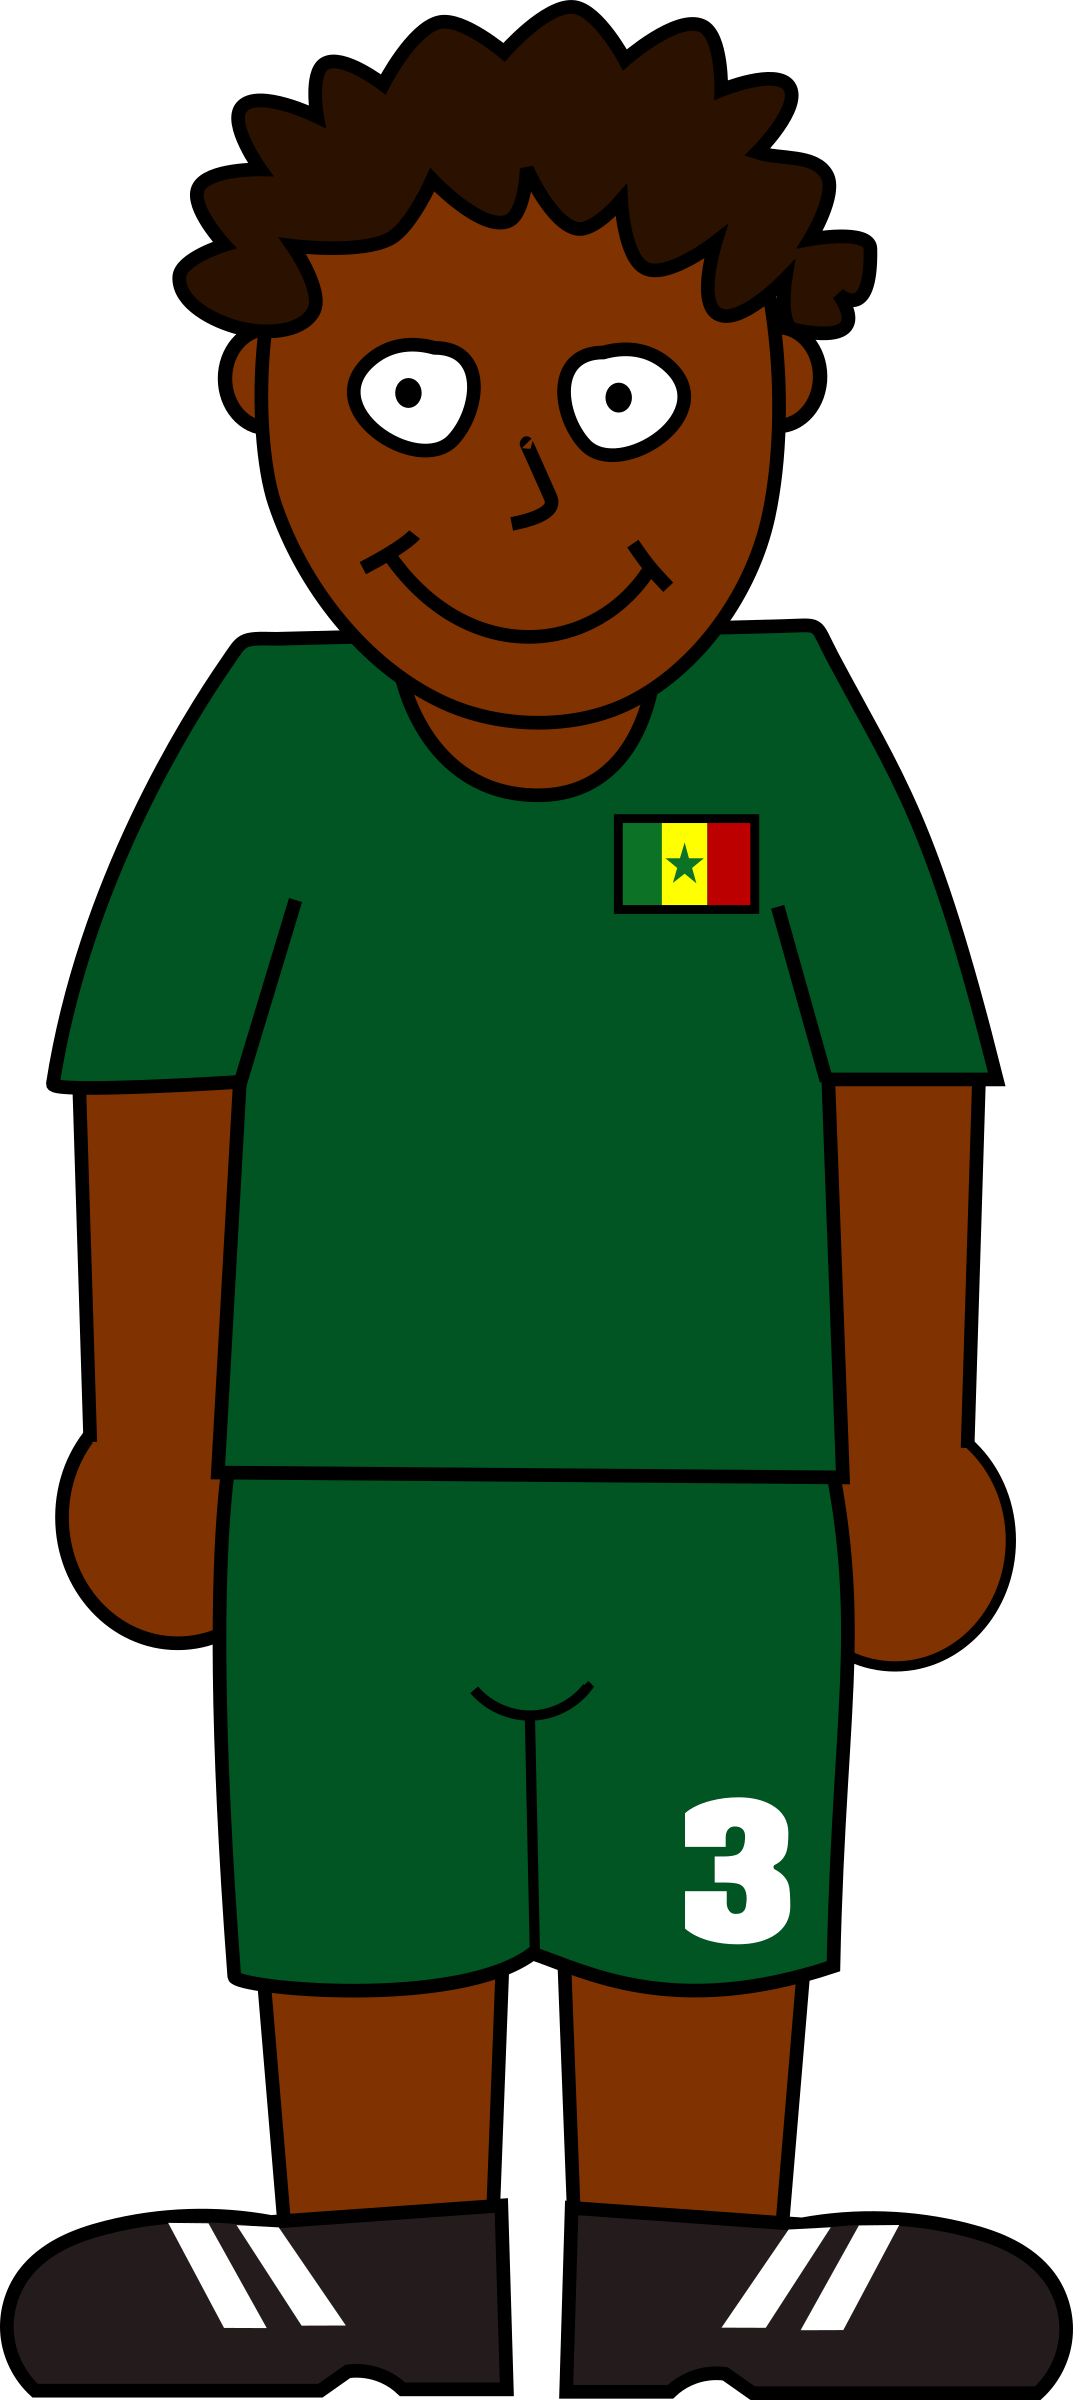 Green football player clipart picture Clipart - Football player senegal picture